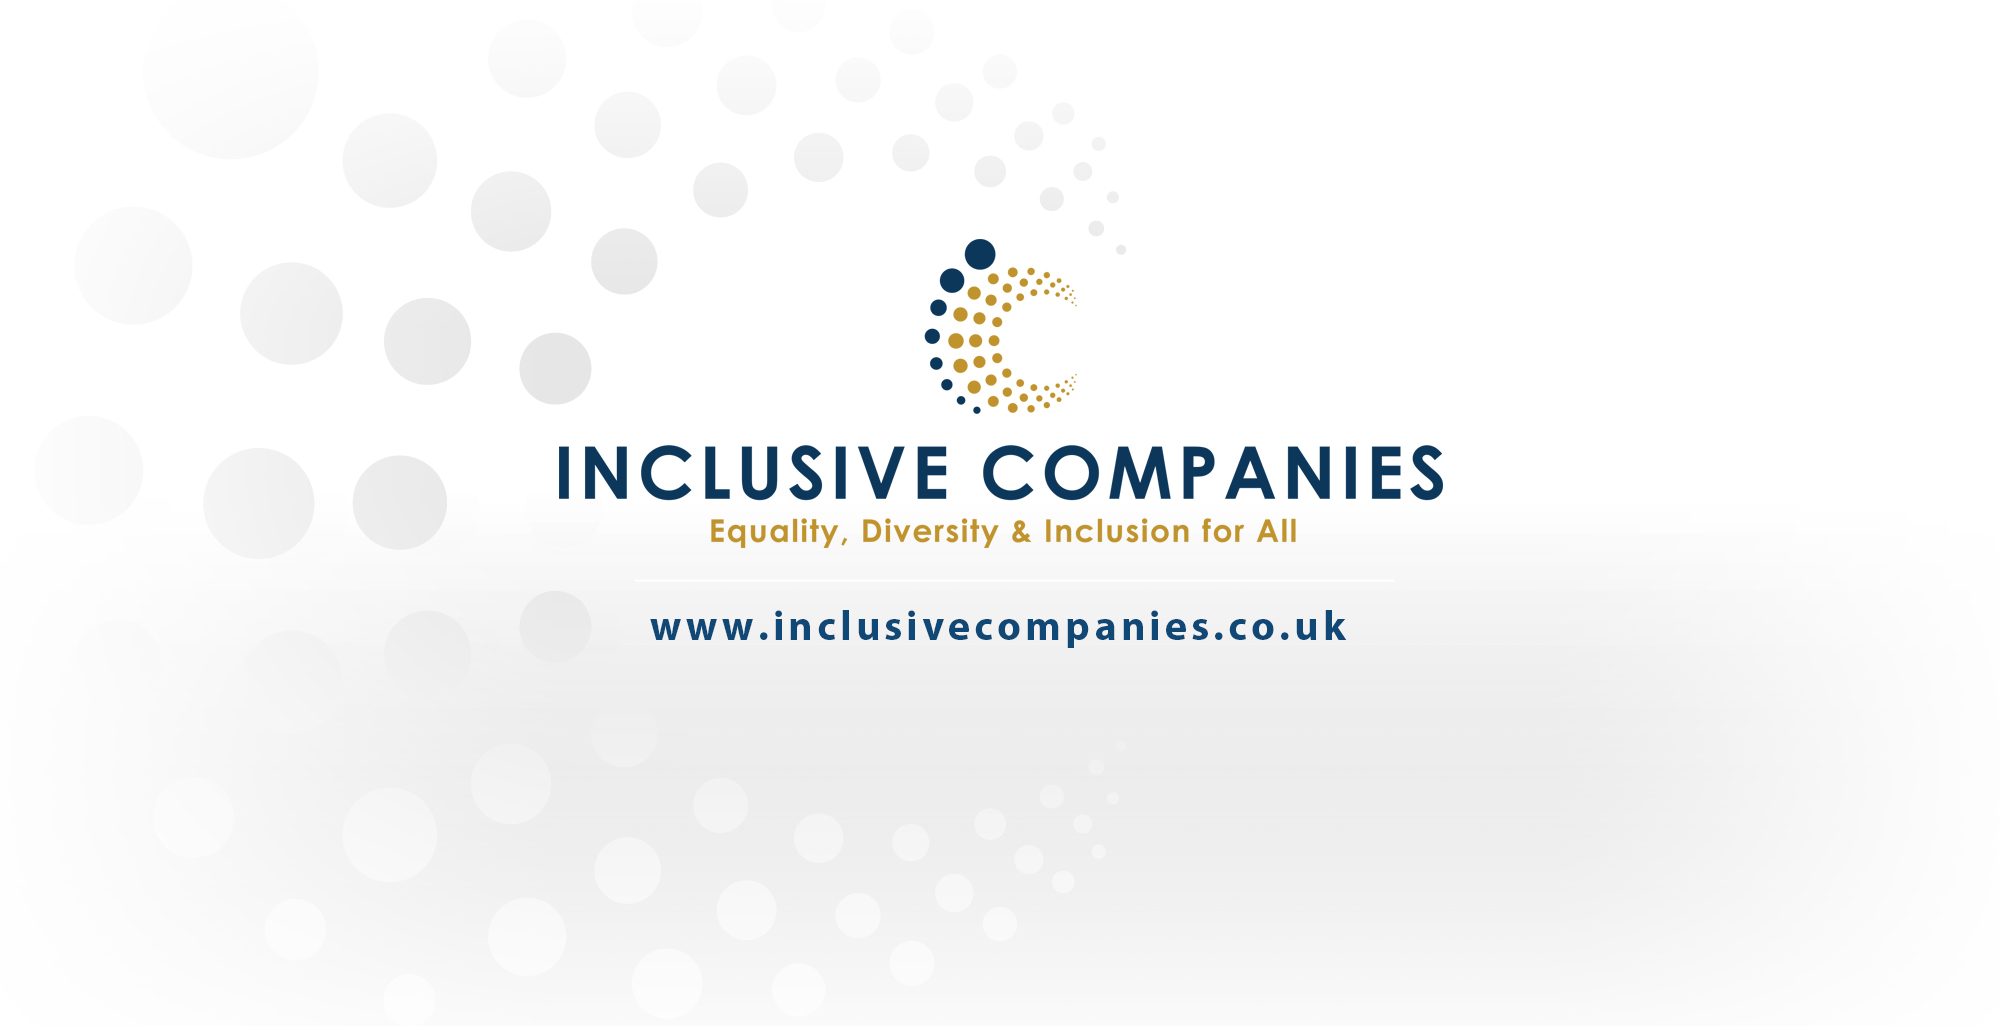 www.inclusivecompanies.co.uk